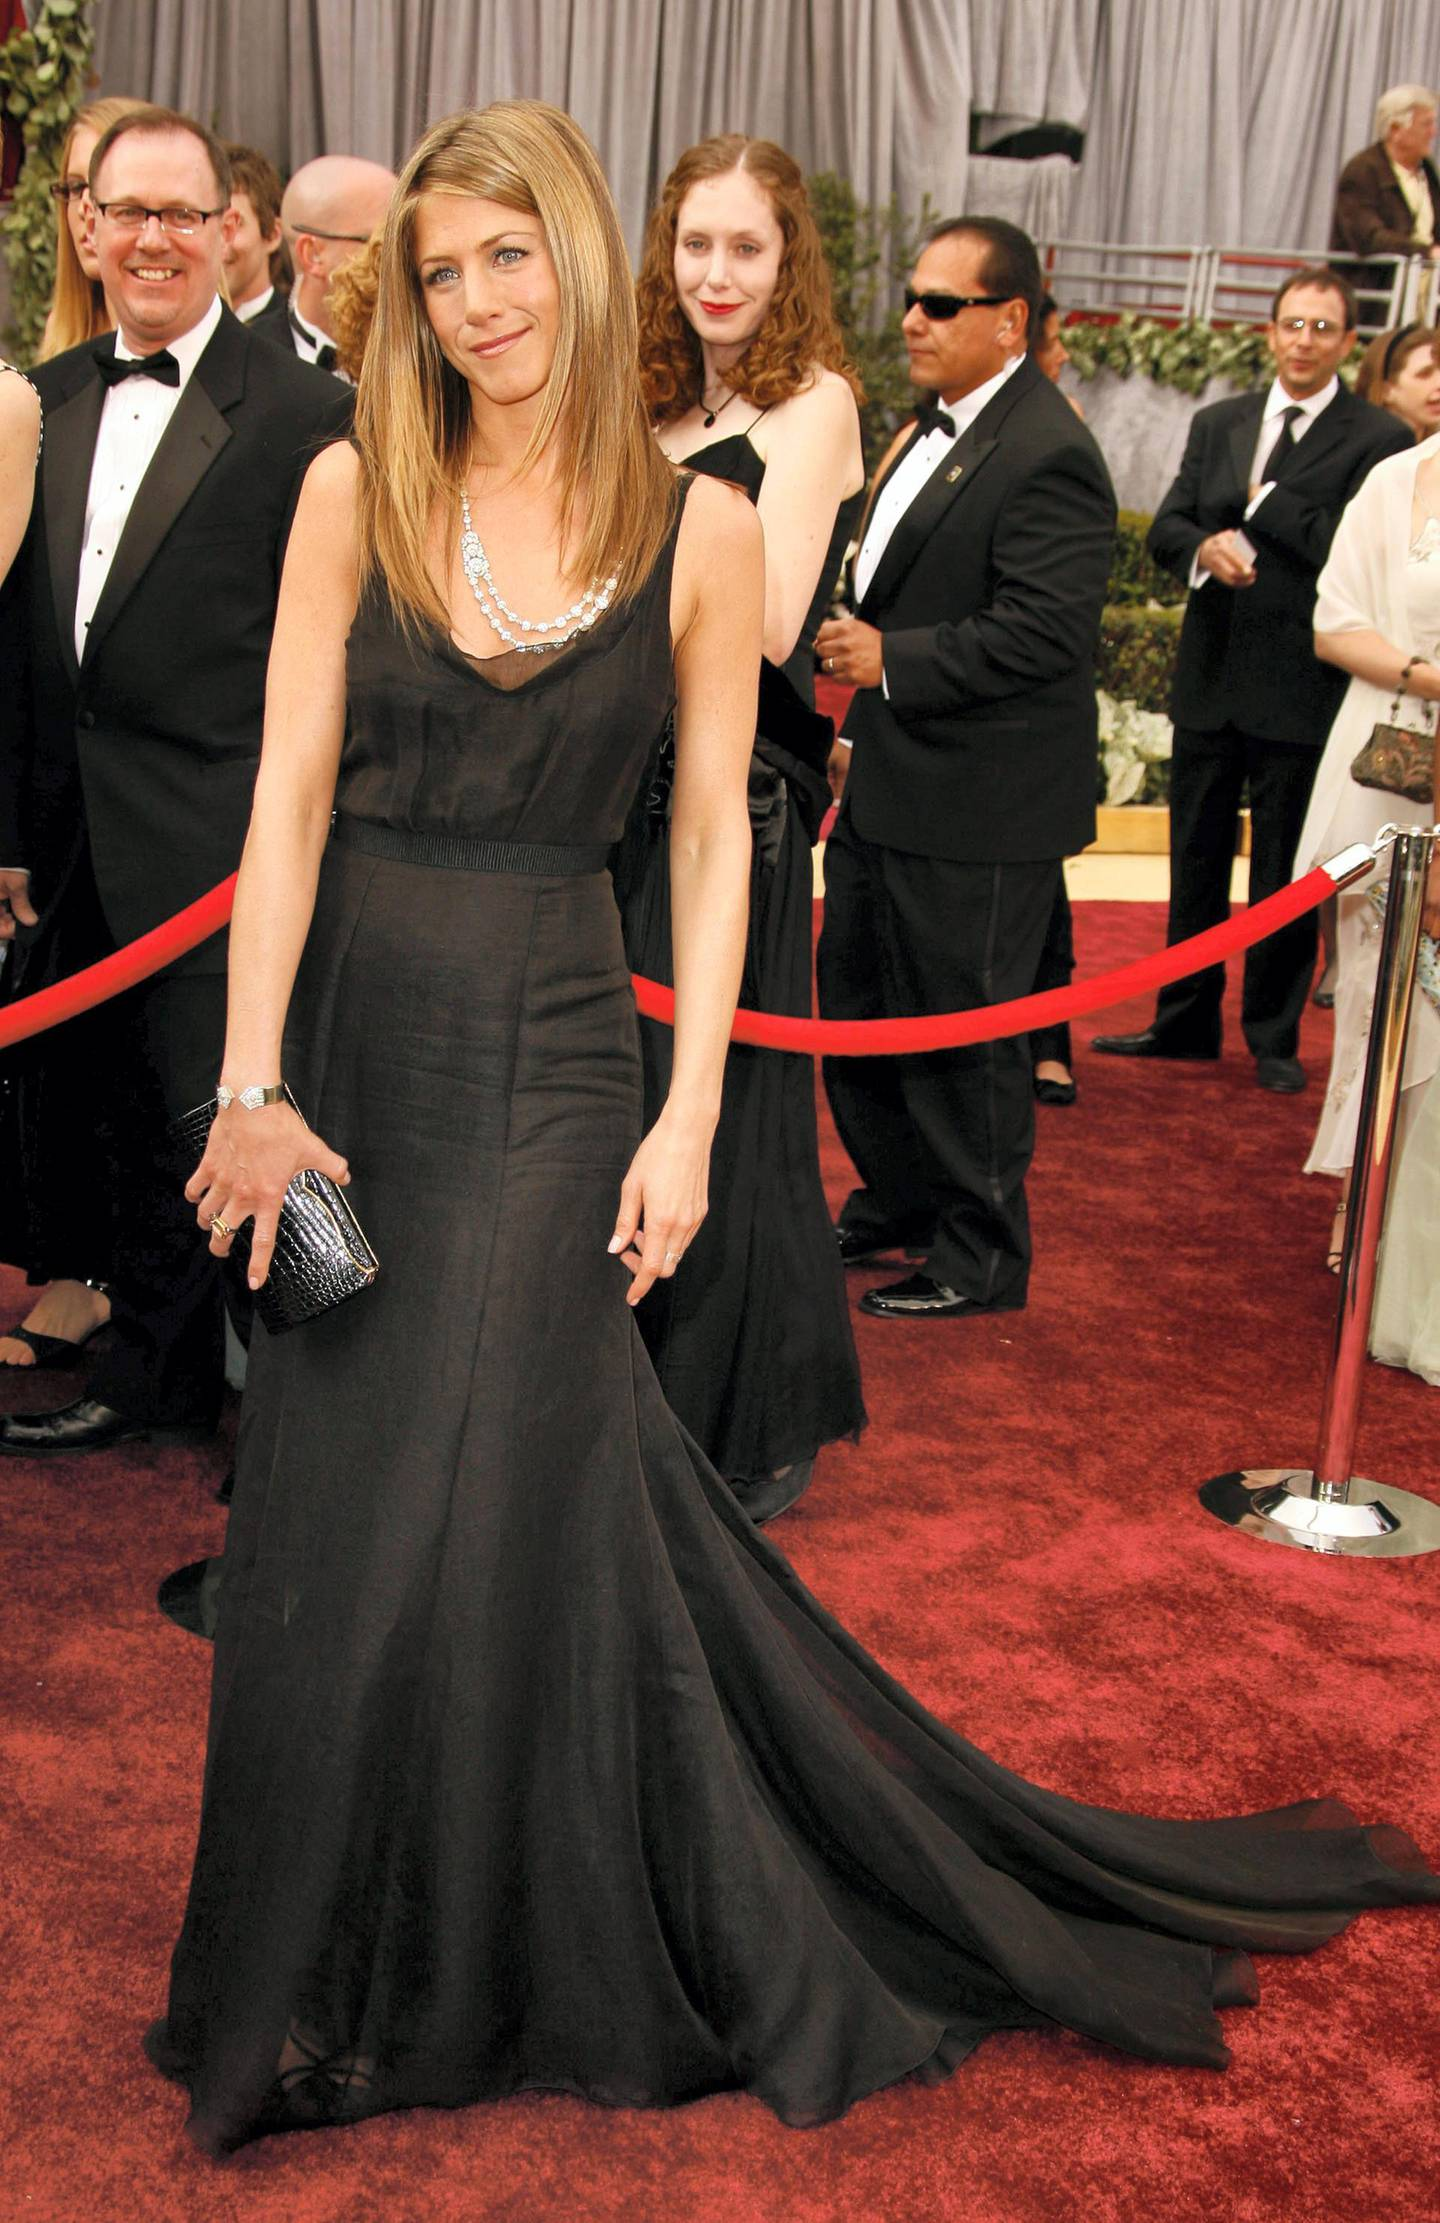 Jennifer Aniston The 78th Annual Academy Awards - Arrivals Kodak Theatre Hollywood , California United States March 5, 2006 Photo by Steve Granitz/WireImage.com  To license this image (7760799), contact WireImage: U.S. +1-212-686-8900 / U.K. +44-207 659 2815 / Australia +61-2-8262-9222 / Japan: +81-3-5464-7020 +1 212-686-8901 (fax) info@wireimage.com (e-mail) www.wireimage.com (web site)